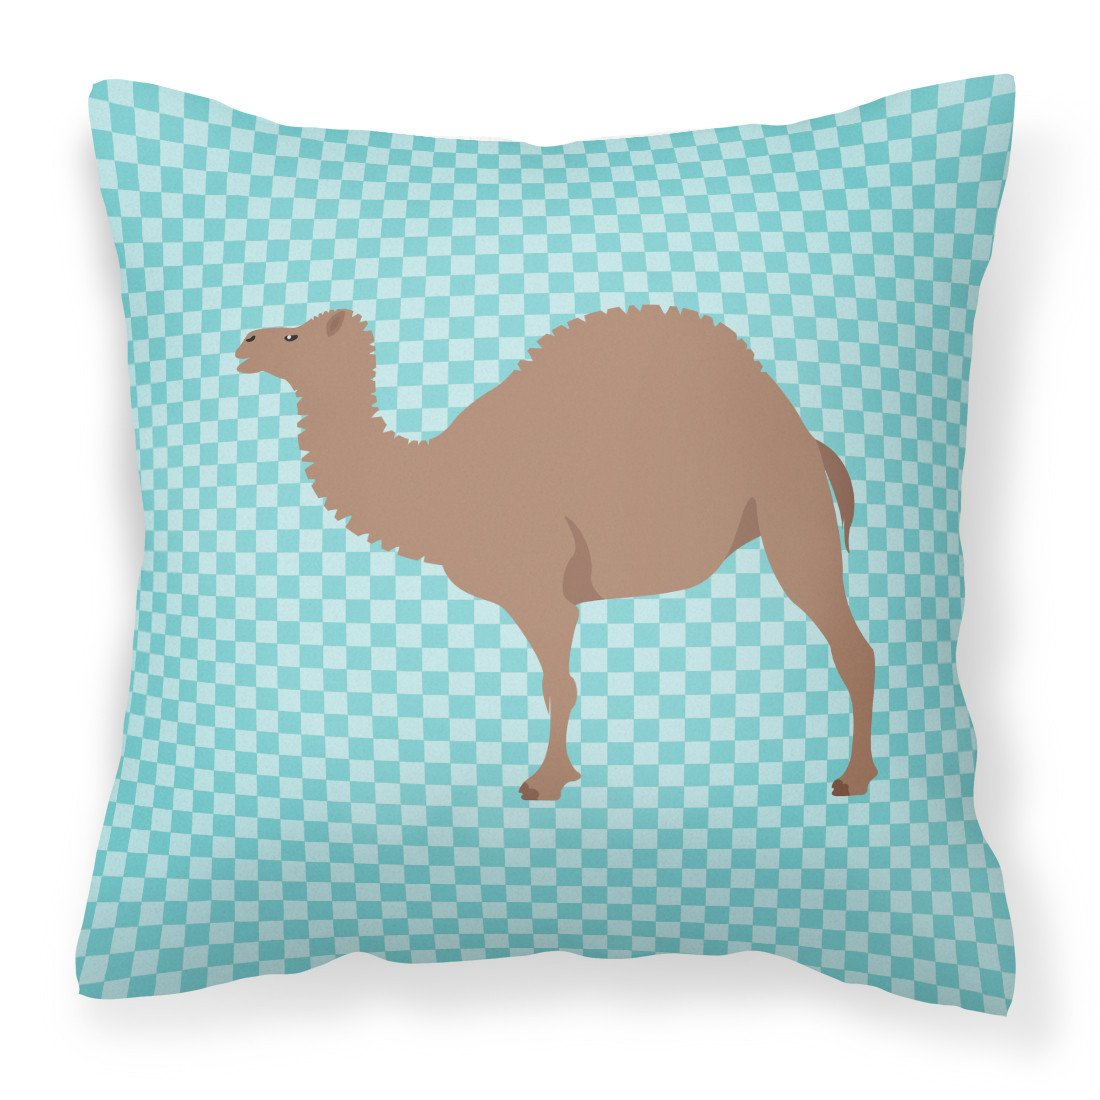 F1 Hybrid Camel Blue Check Fabric Decorative Pillow BB7993PW1818 by Caroline's Treasures